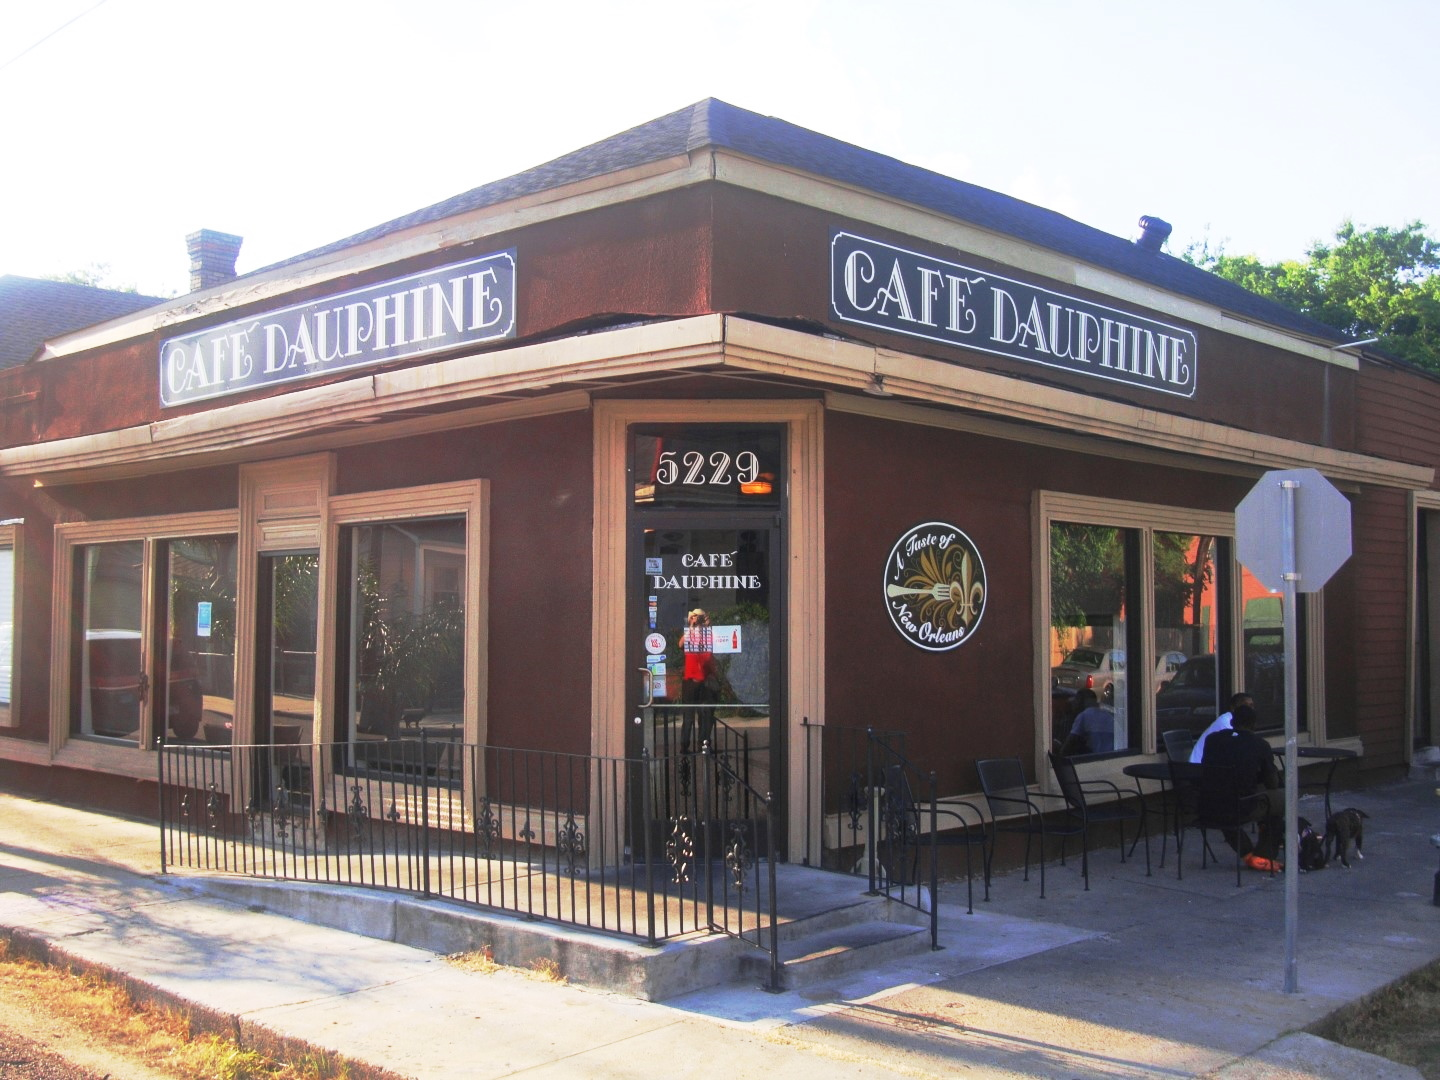 Cafe Dauphine In New Orleans Lower 9th Ward